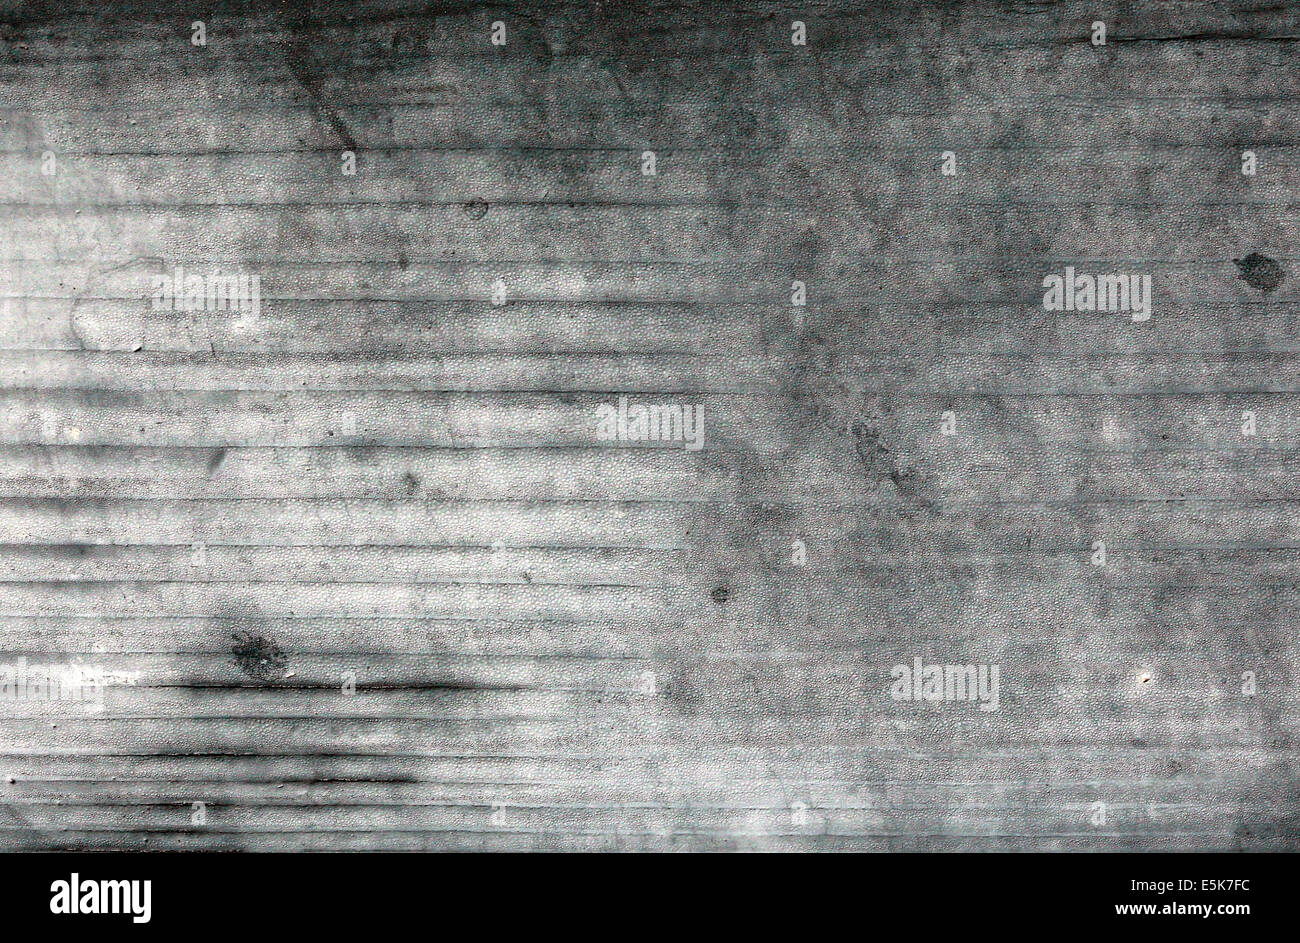 High Quality Colorful Weathered Wood Wall Background In Natural Faded Grey White Black Paint Pattern With Aged Grunge Look